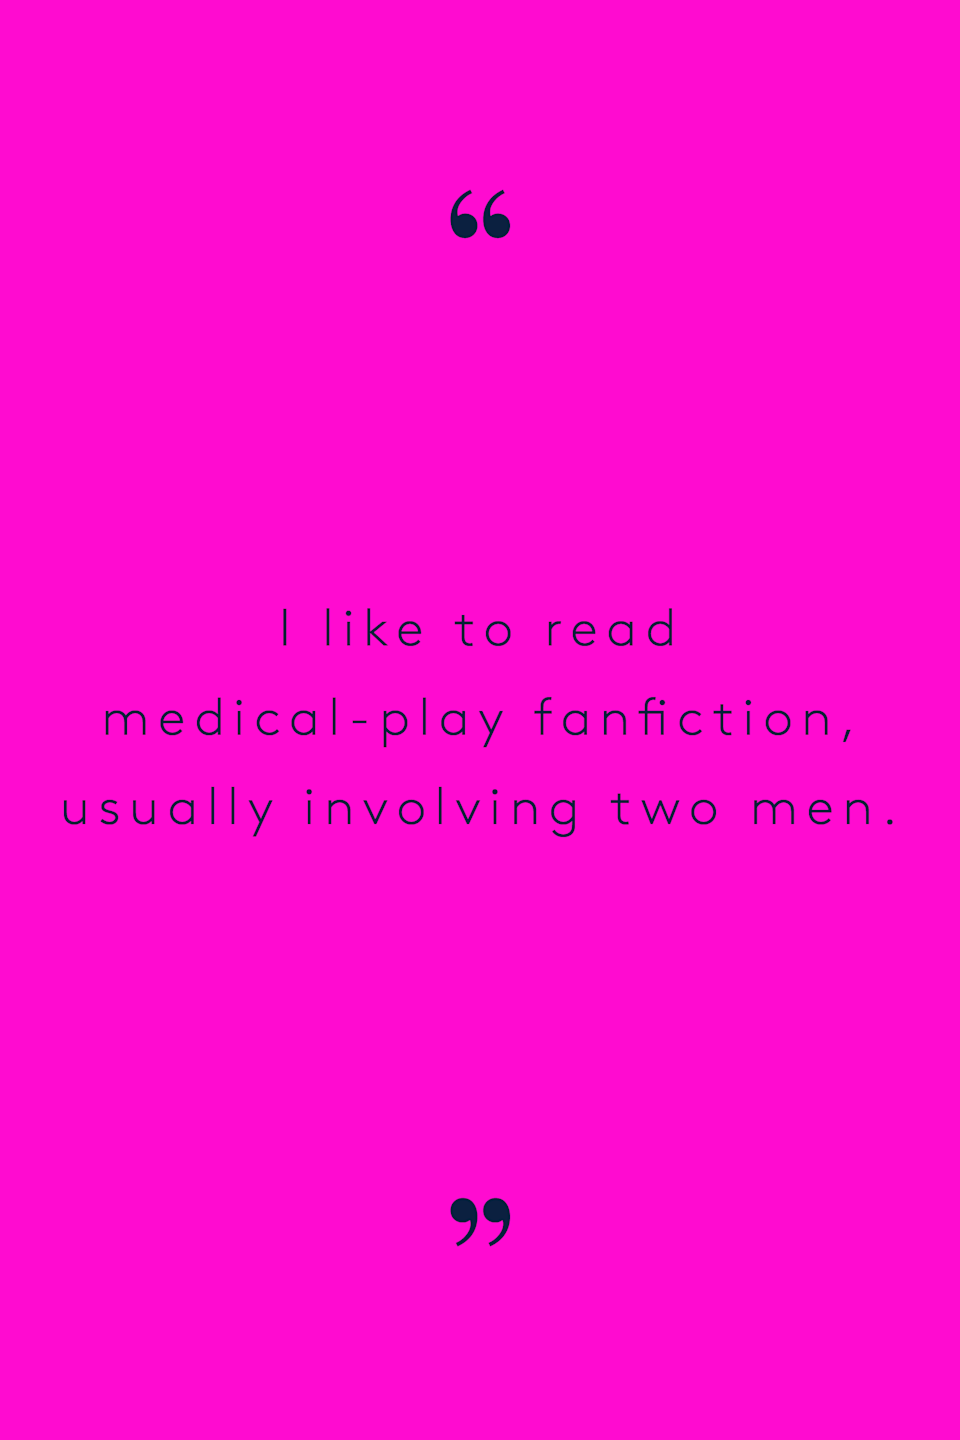 """<p>""""I don't know if I'd ever like this in a role play, but I like to read medical play fanfiction usually involving two men, even though I'm a heterosexual woman. I really like the act of one person being examined and the other one in control of that."""" — Em, 18</p>"""